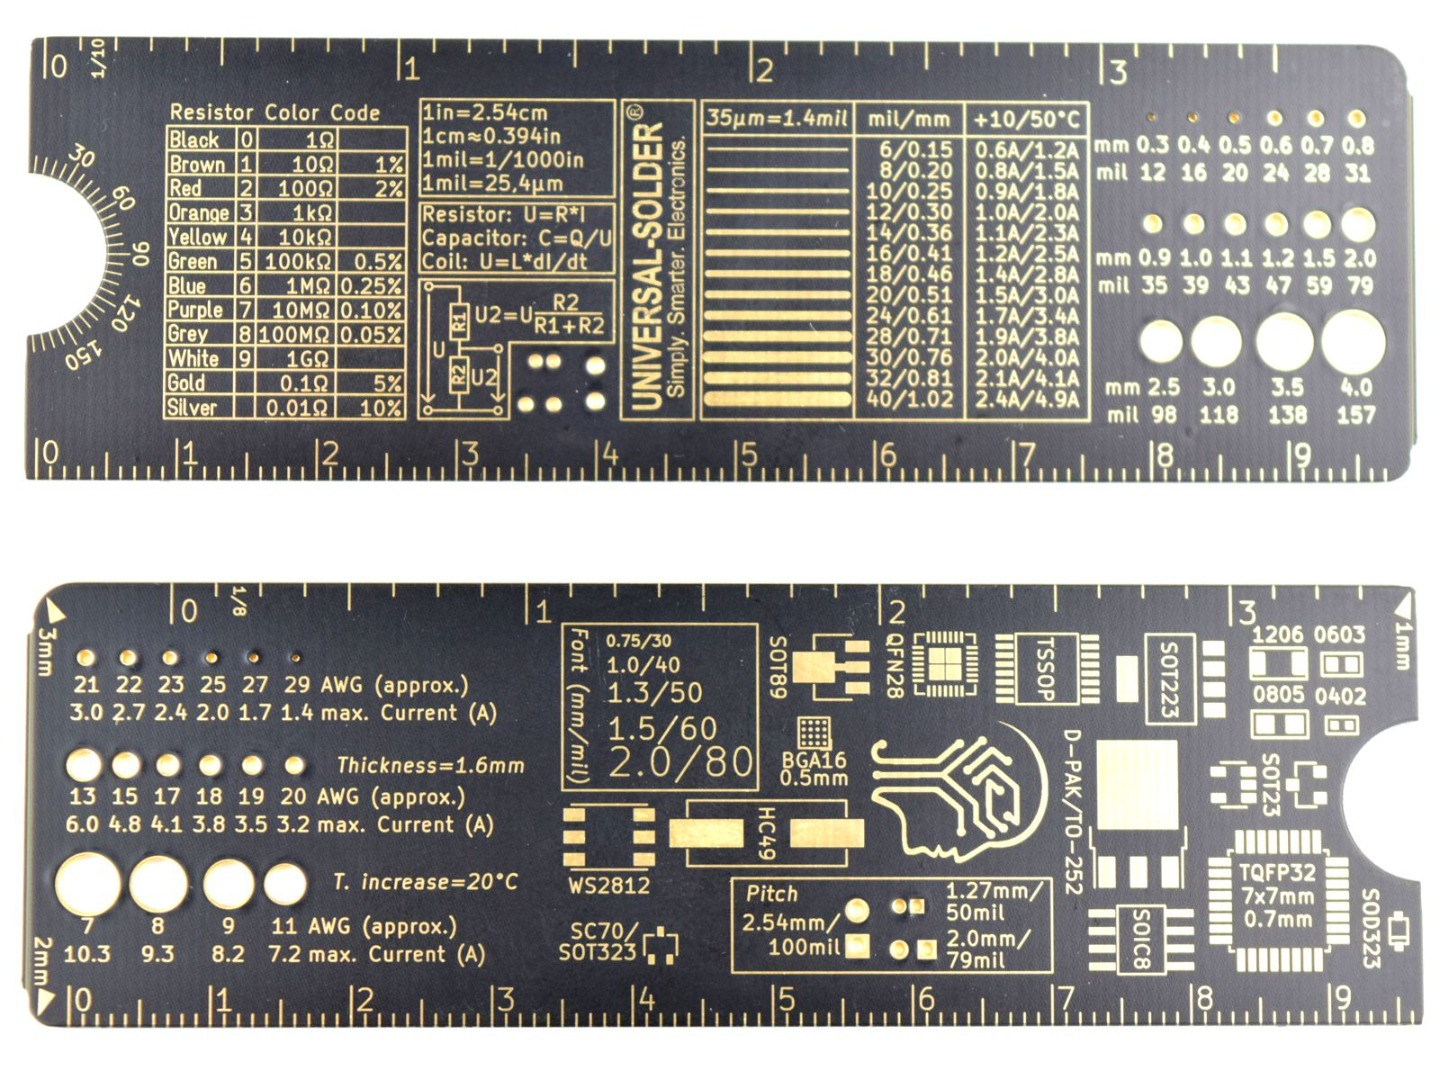 CANADUINO PCB Ruler 10 cm – Black and Gold – SMD Foot Prints – Wire Gauges etc.